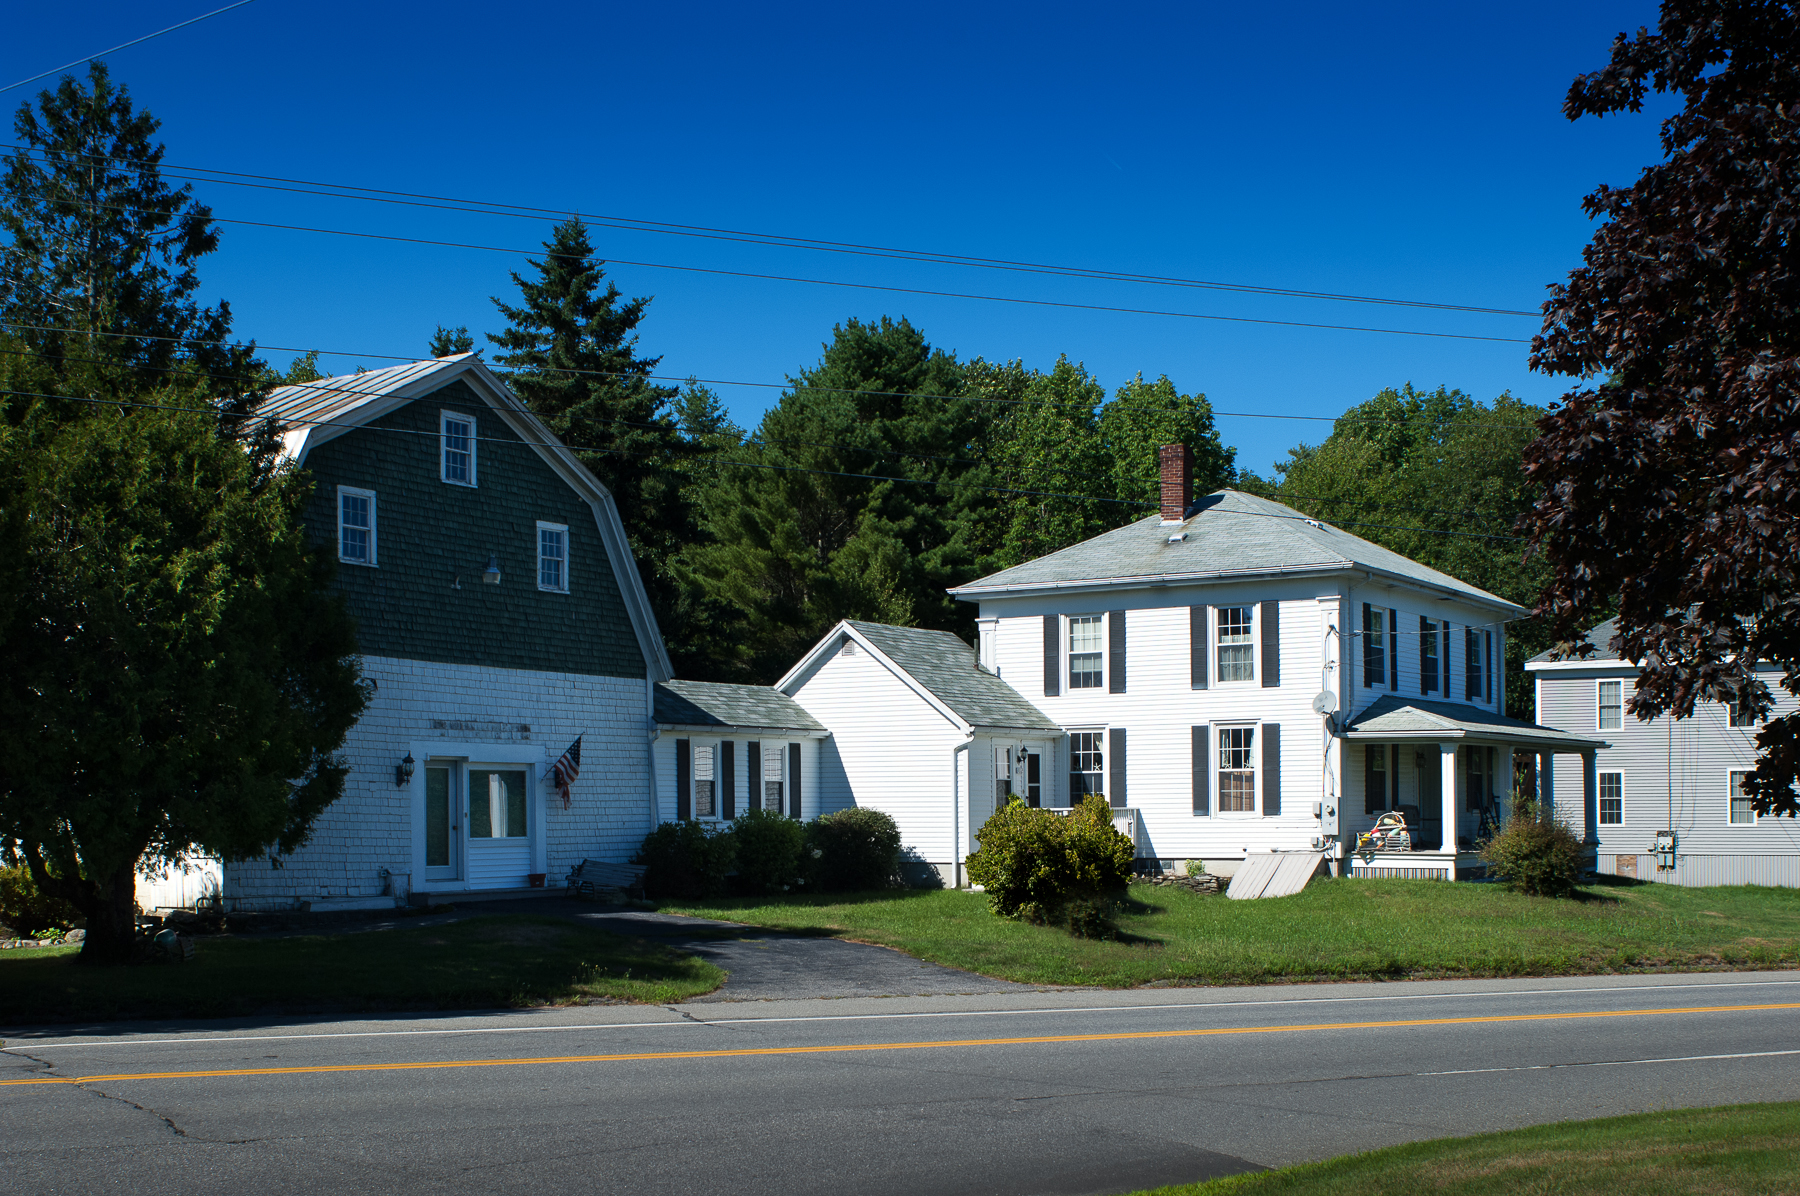 Single Family Home for Sale at Gallery Gatherings 102 Ocean Point Road Boothbay, Maine 04532 United States